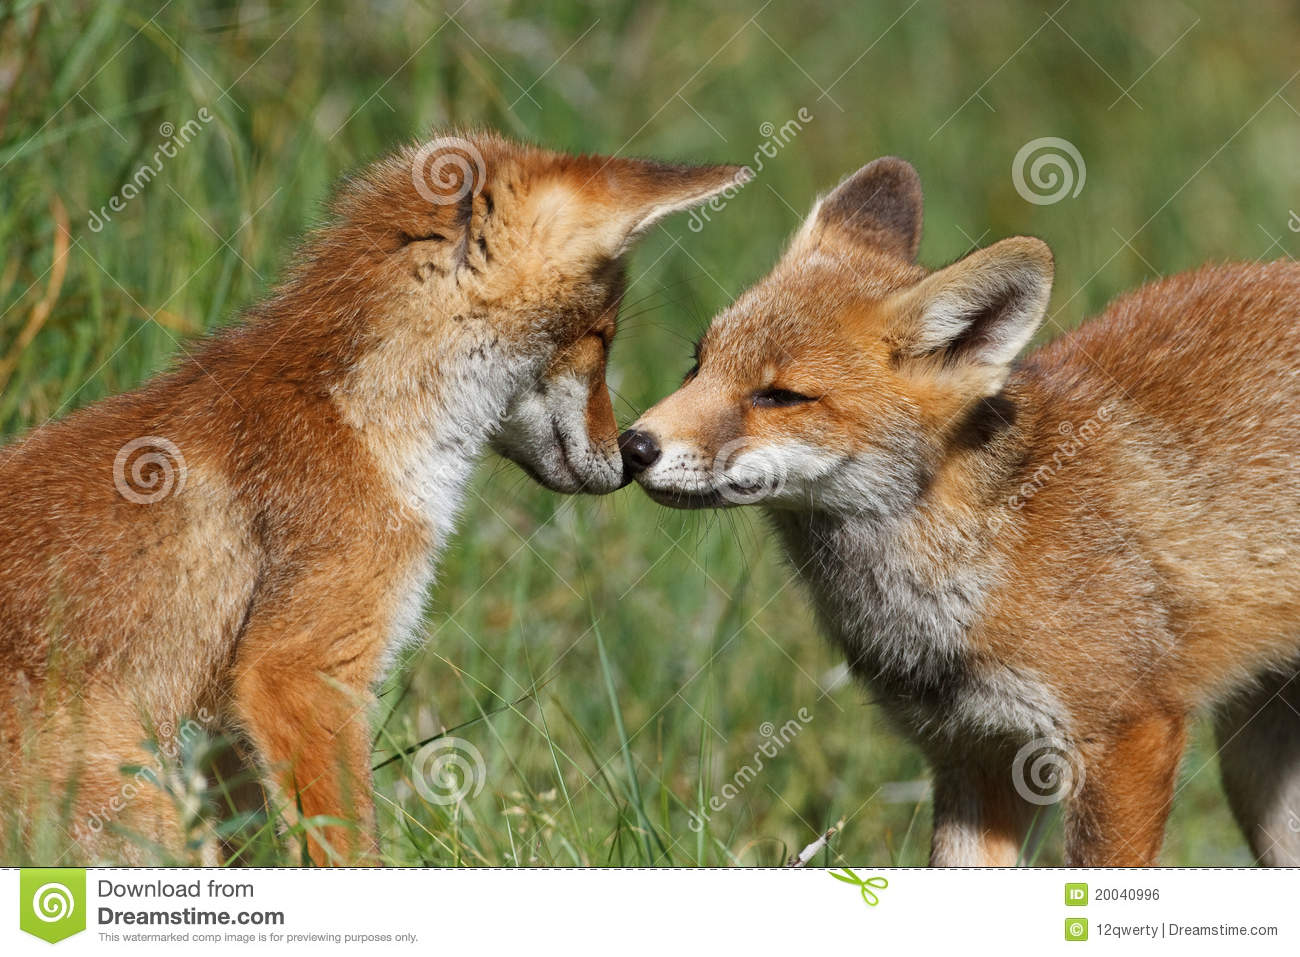 Royalty Free Stock Image  Red fox cubs playingRed Fox Cubs